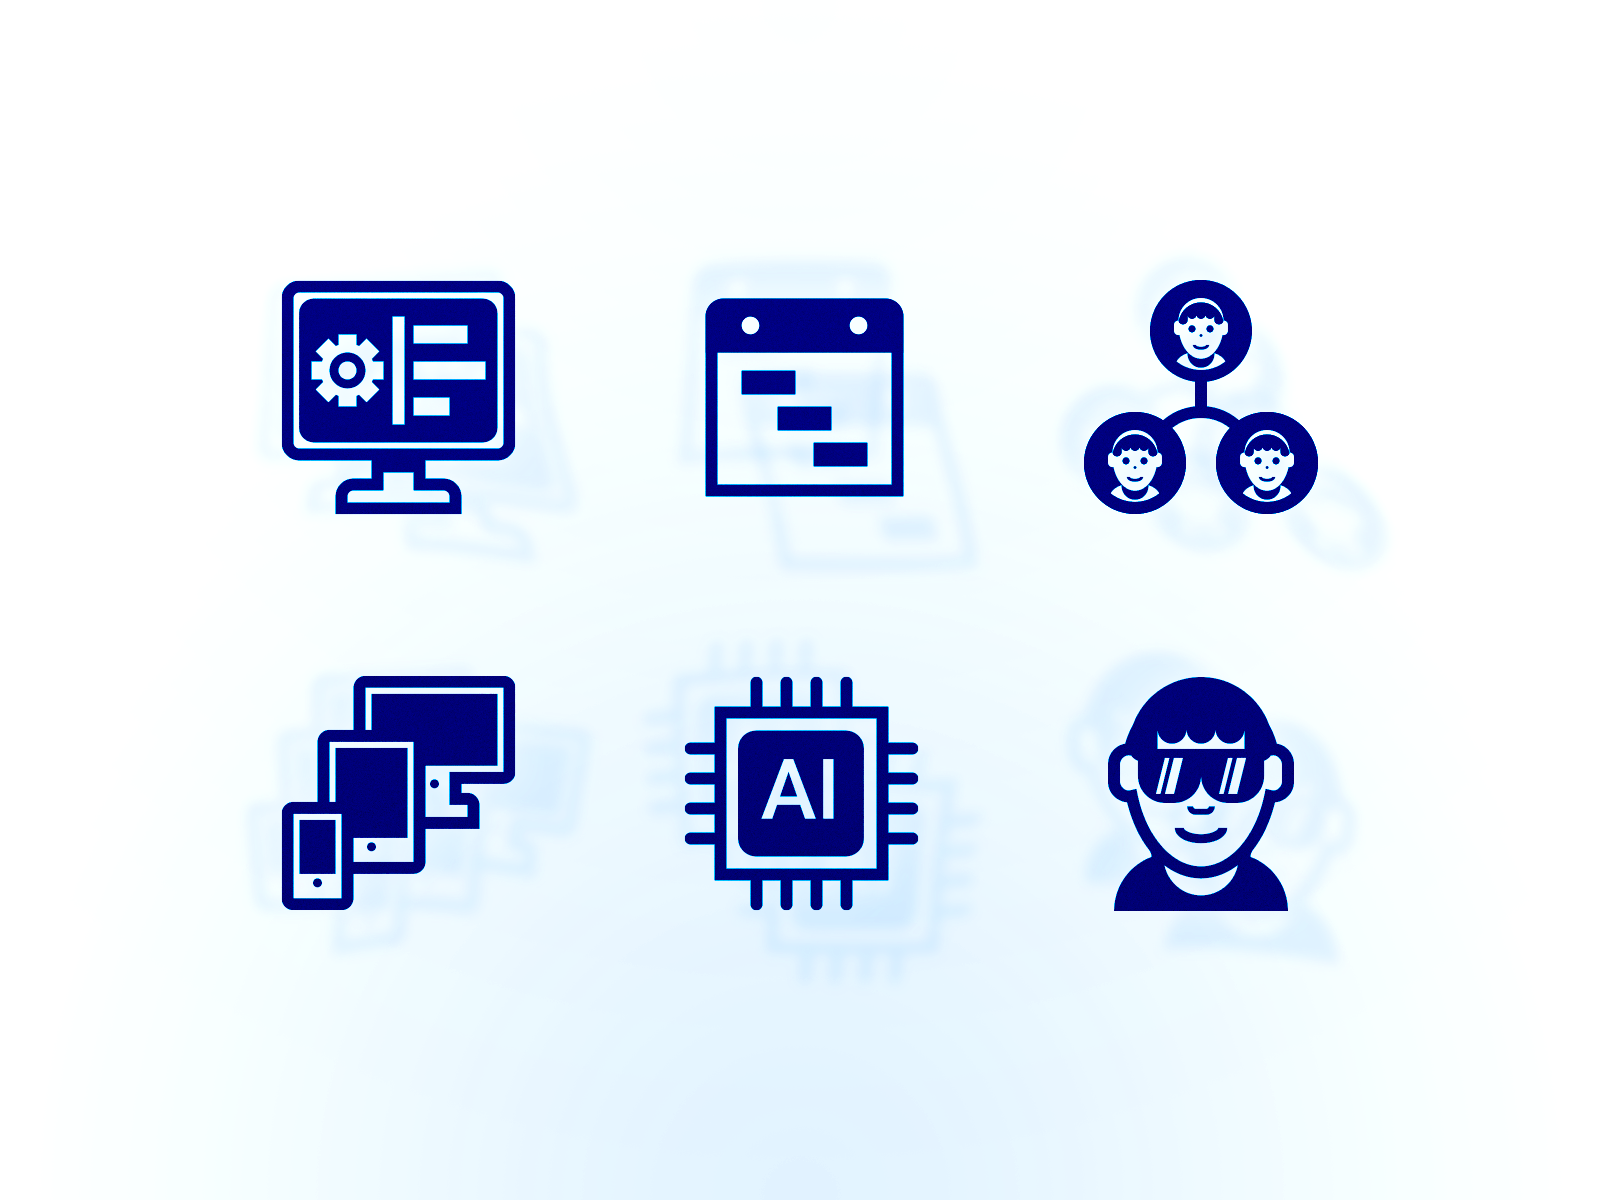 Field service edge product page icon illustrations